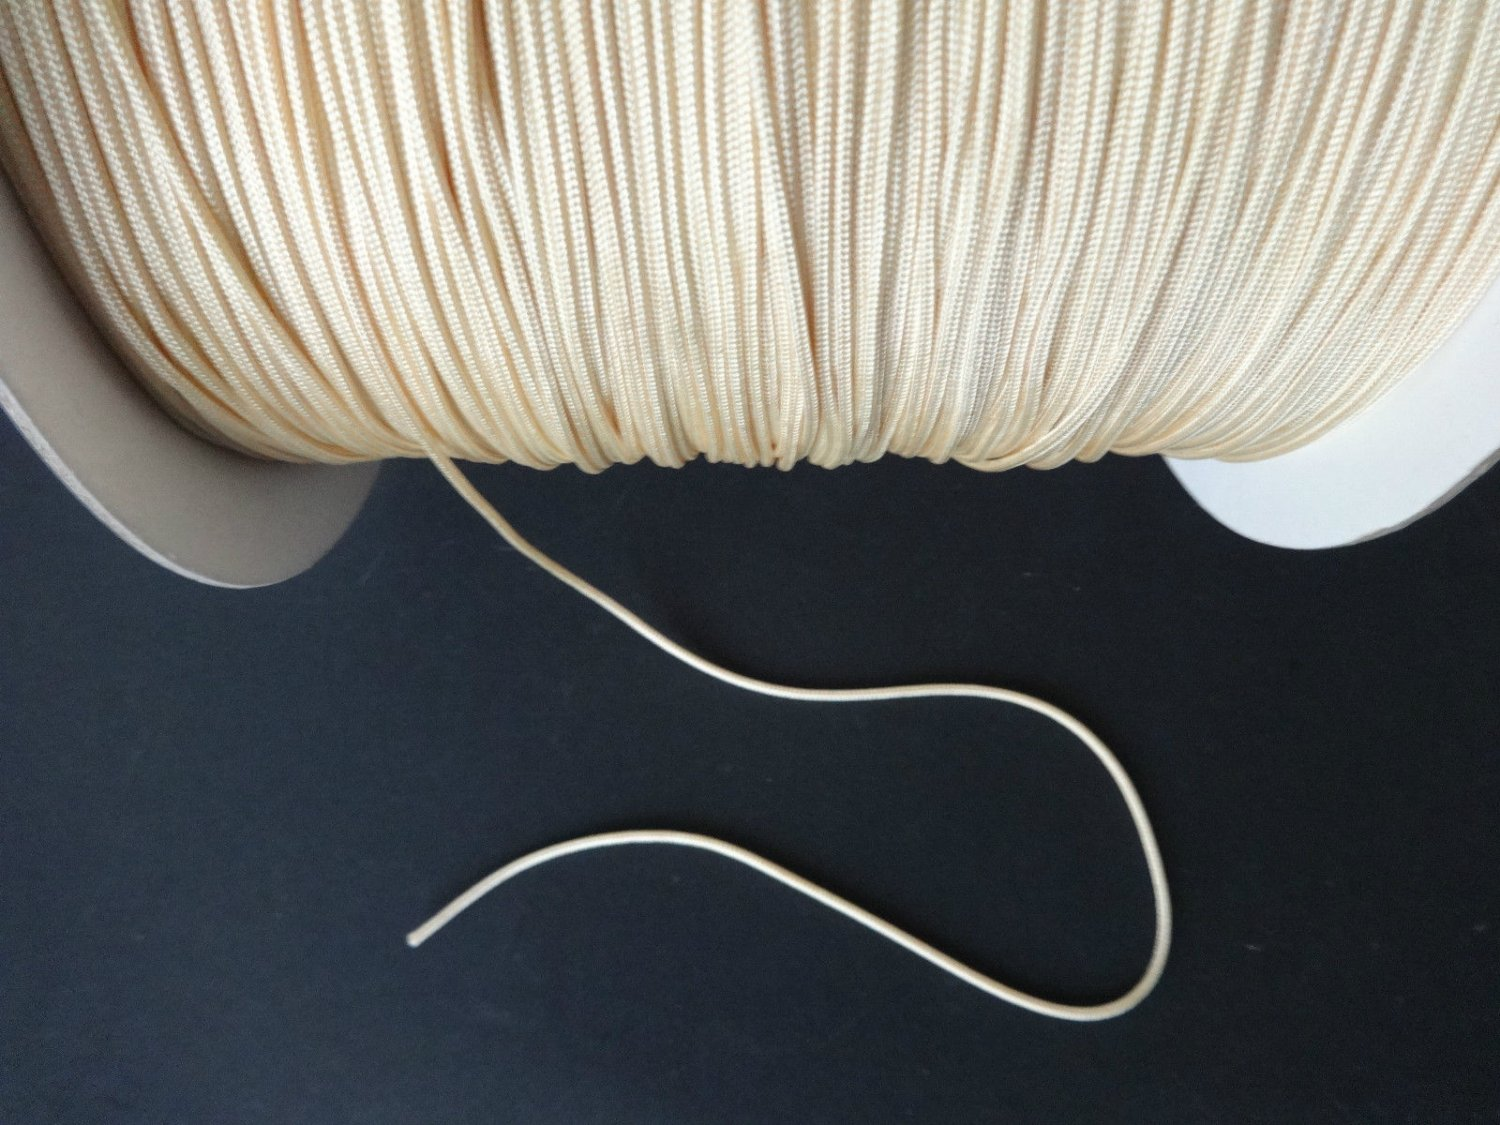 25 YARDS:1.8 MM GOLD CITRUS LIFT CORD : ROMAN/PLEATED shade & HORIZONTAL blind